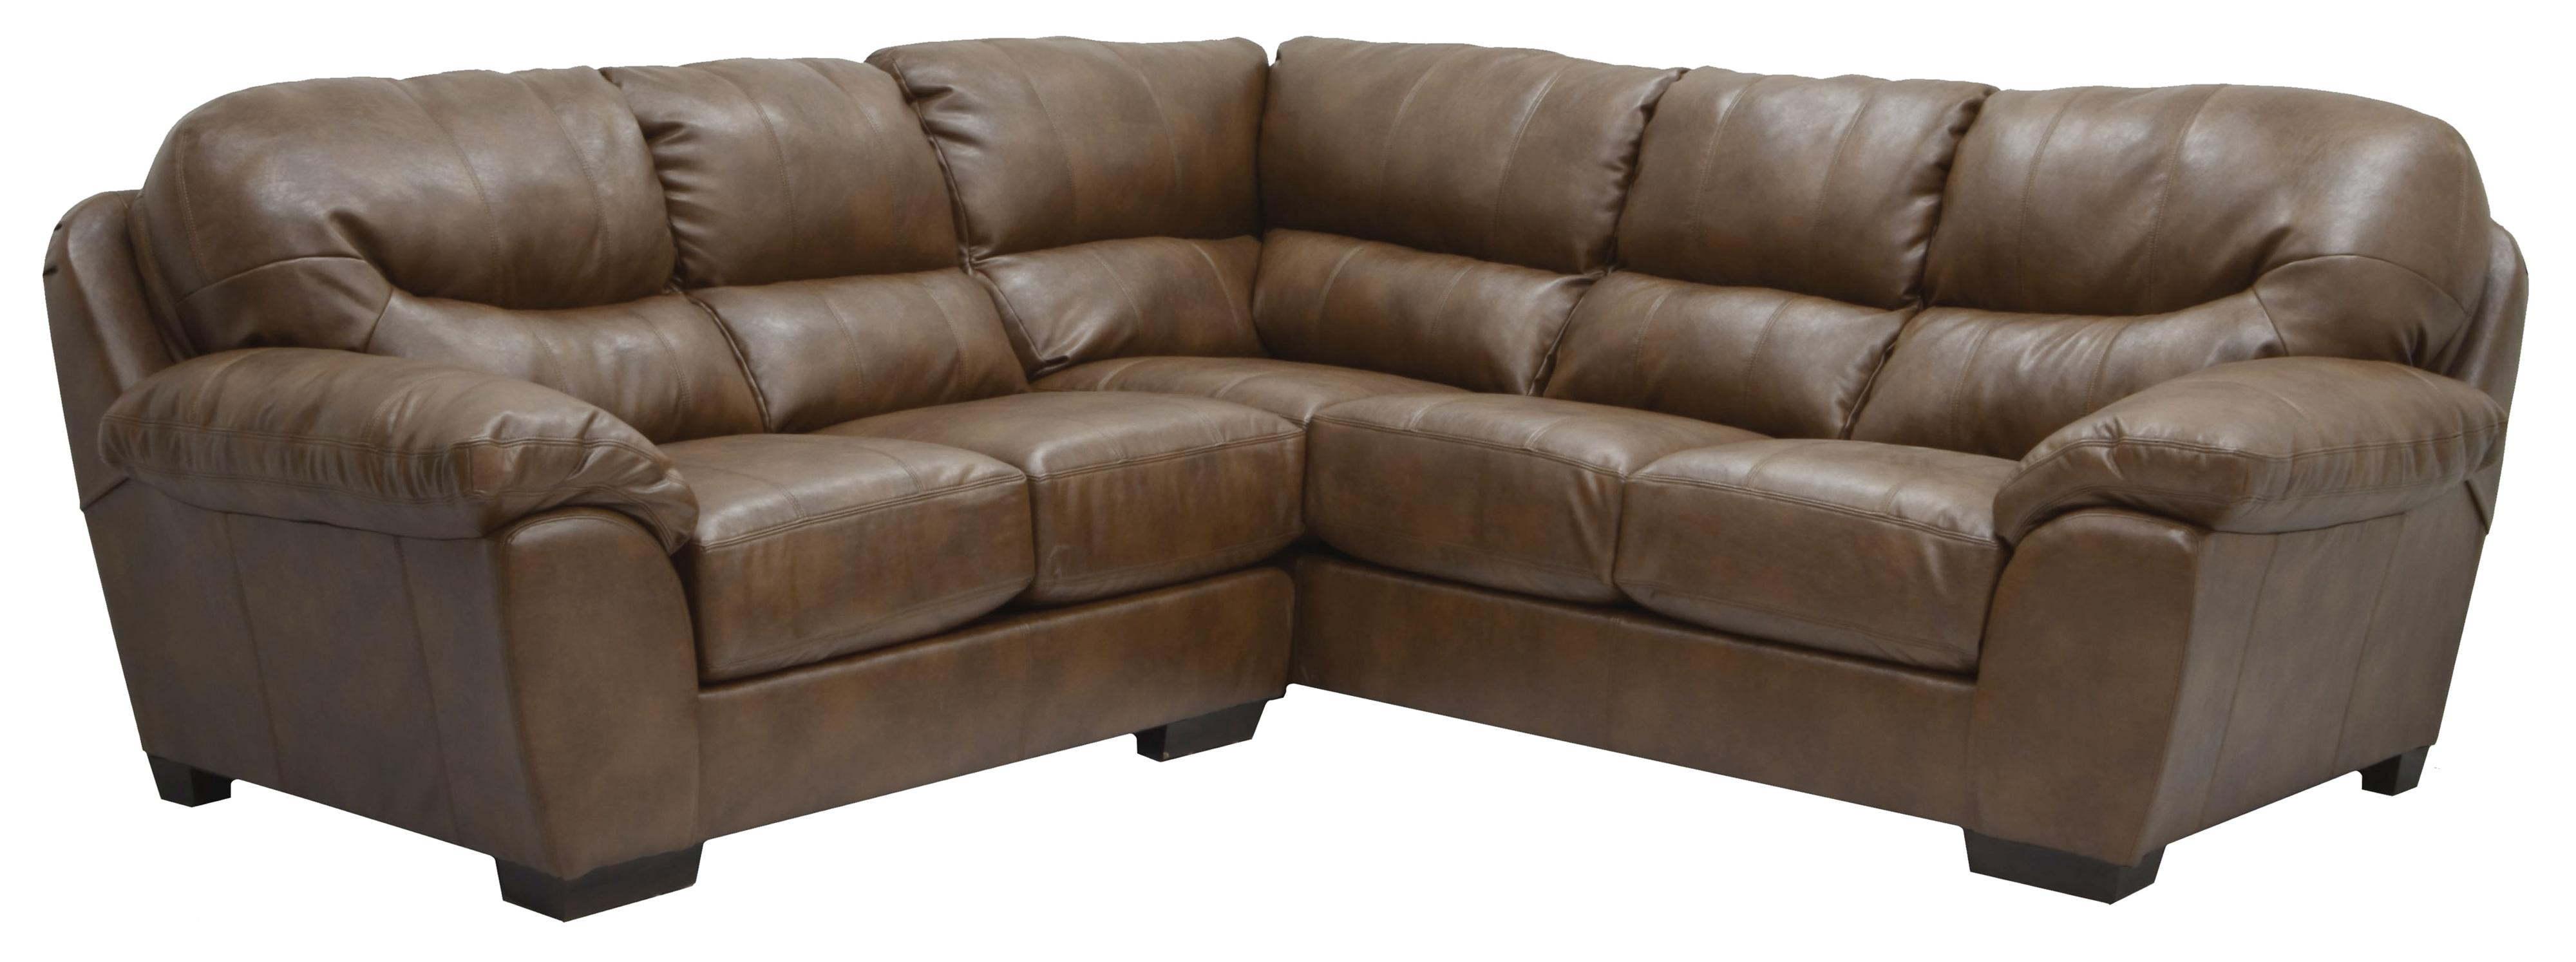 Fashionable Jackson 6 Piece Power Reclining Sectionals Within Sectional Sofa In Corner Configurationjackson Furniture (View 19 of 20)